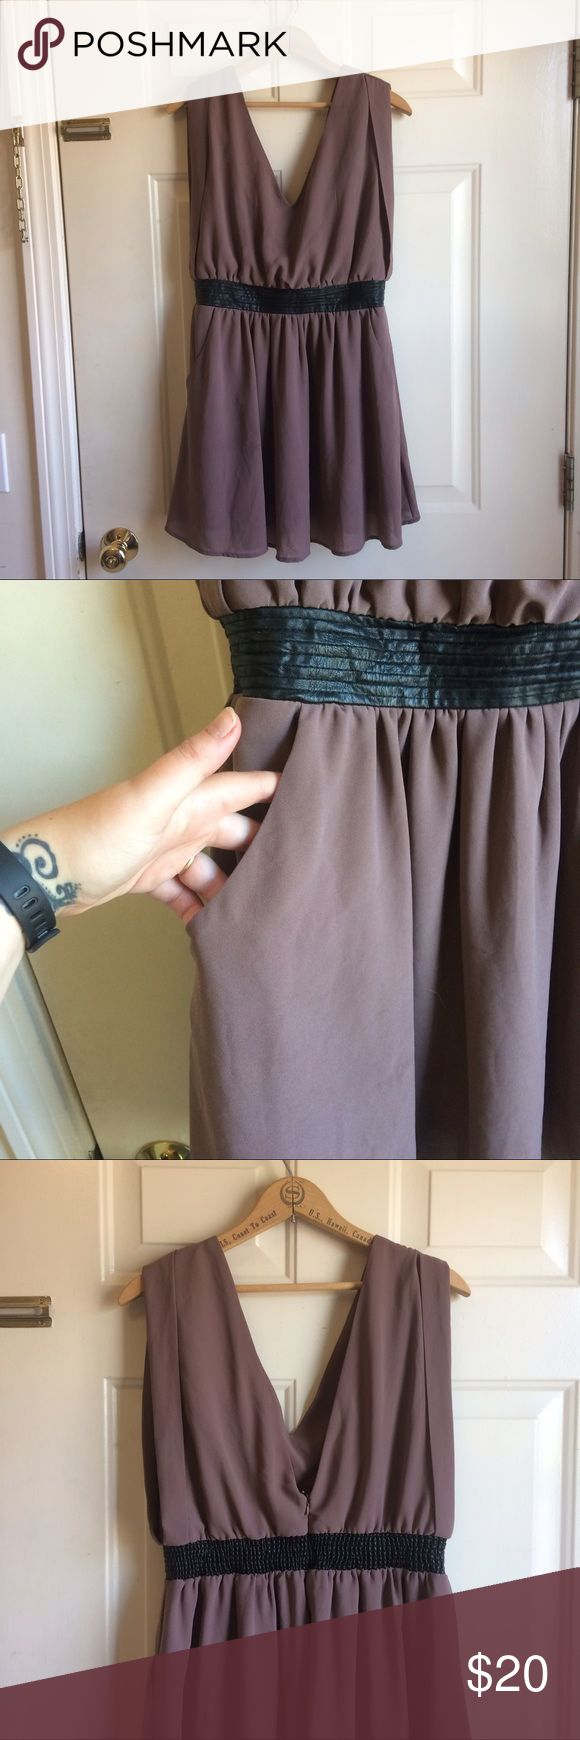 Mauve Blousy Tunic with Pockets Wonderful tunic with lots of space for the girls! Too big for my ta-tas, only worn a few times. Faux leather stretchy waistband. Measurements- bust 22, waist 16, length 32. Labeled modcloth for visibility. ModCloth Tops Tunics